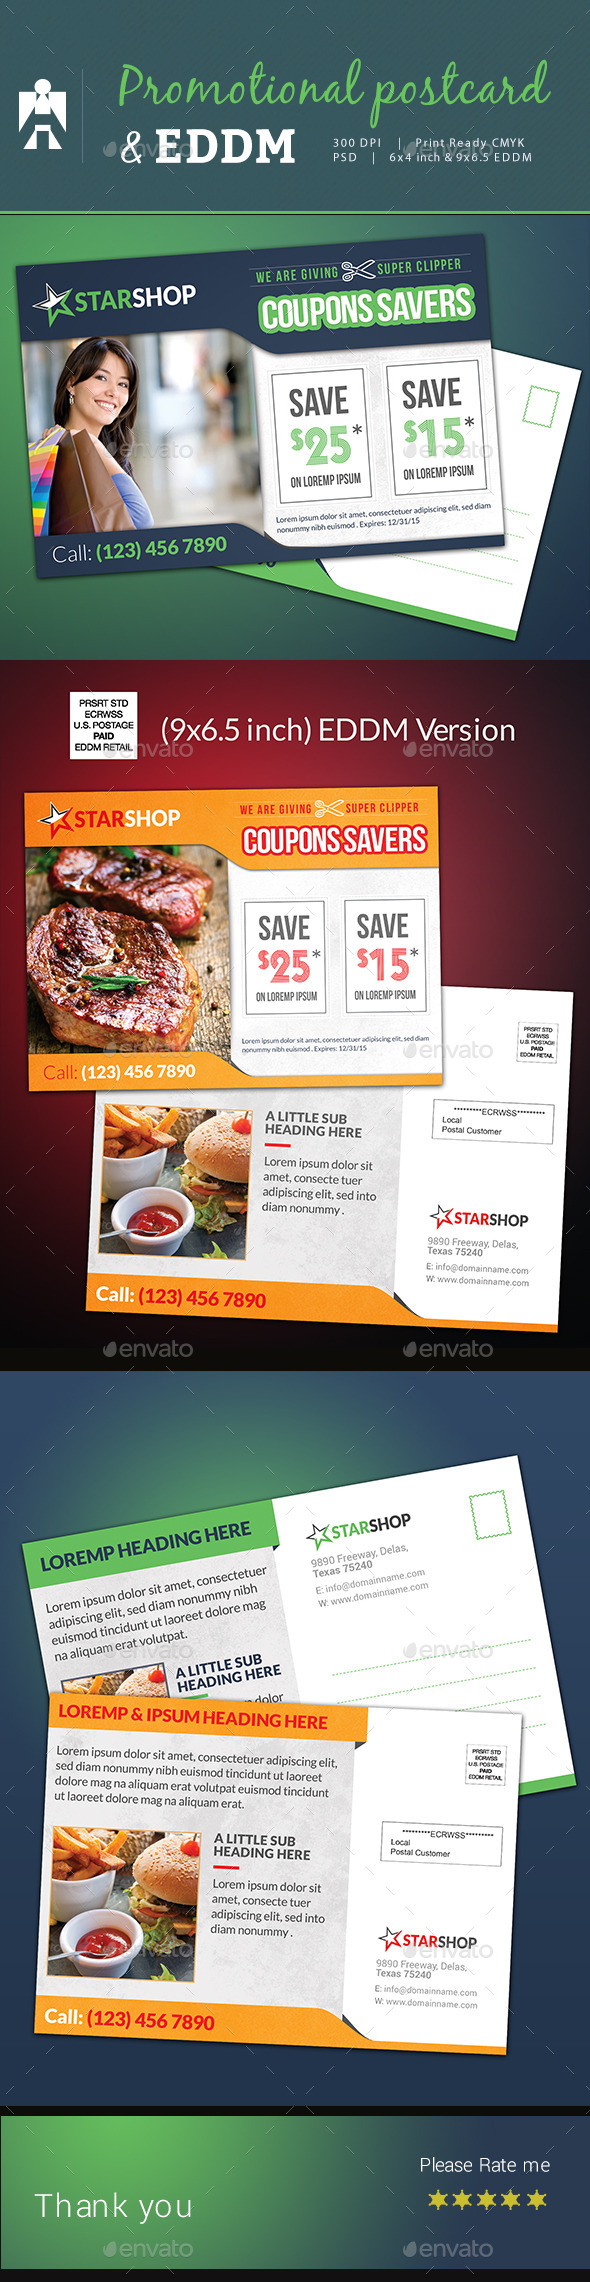 Coupon Code Postcard and Every Door Direct Mail EDDM  - Cards & Invites Print Templates